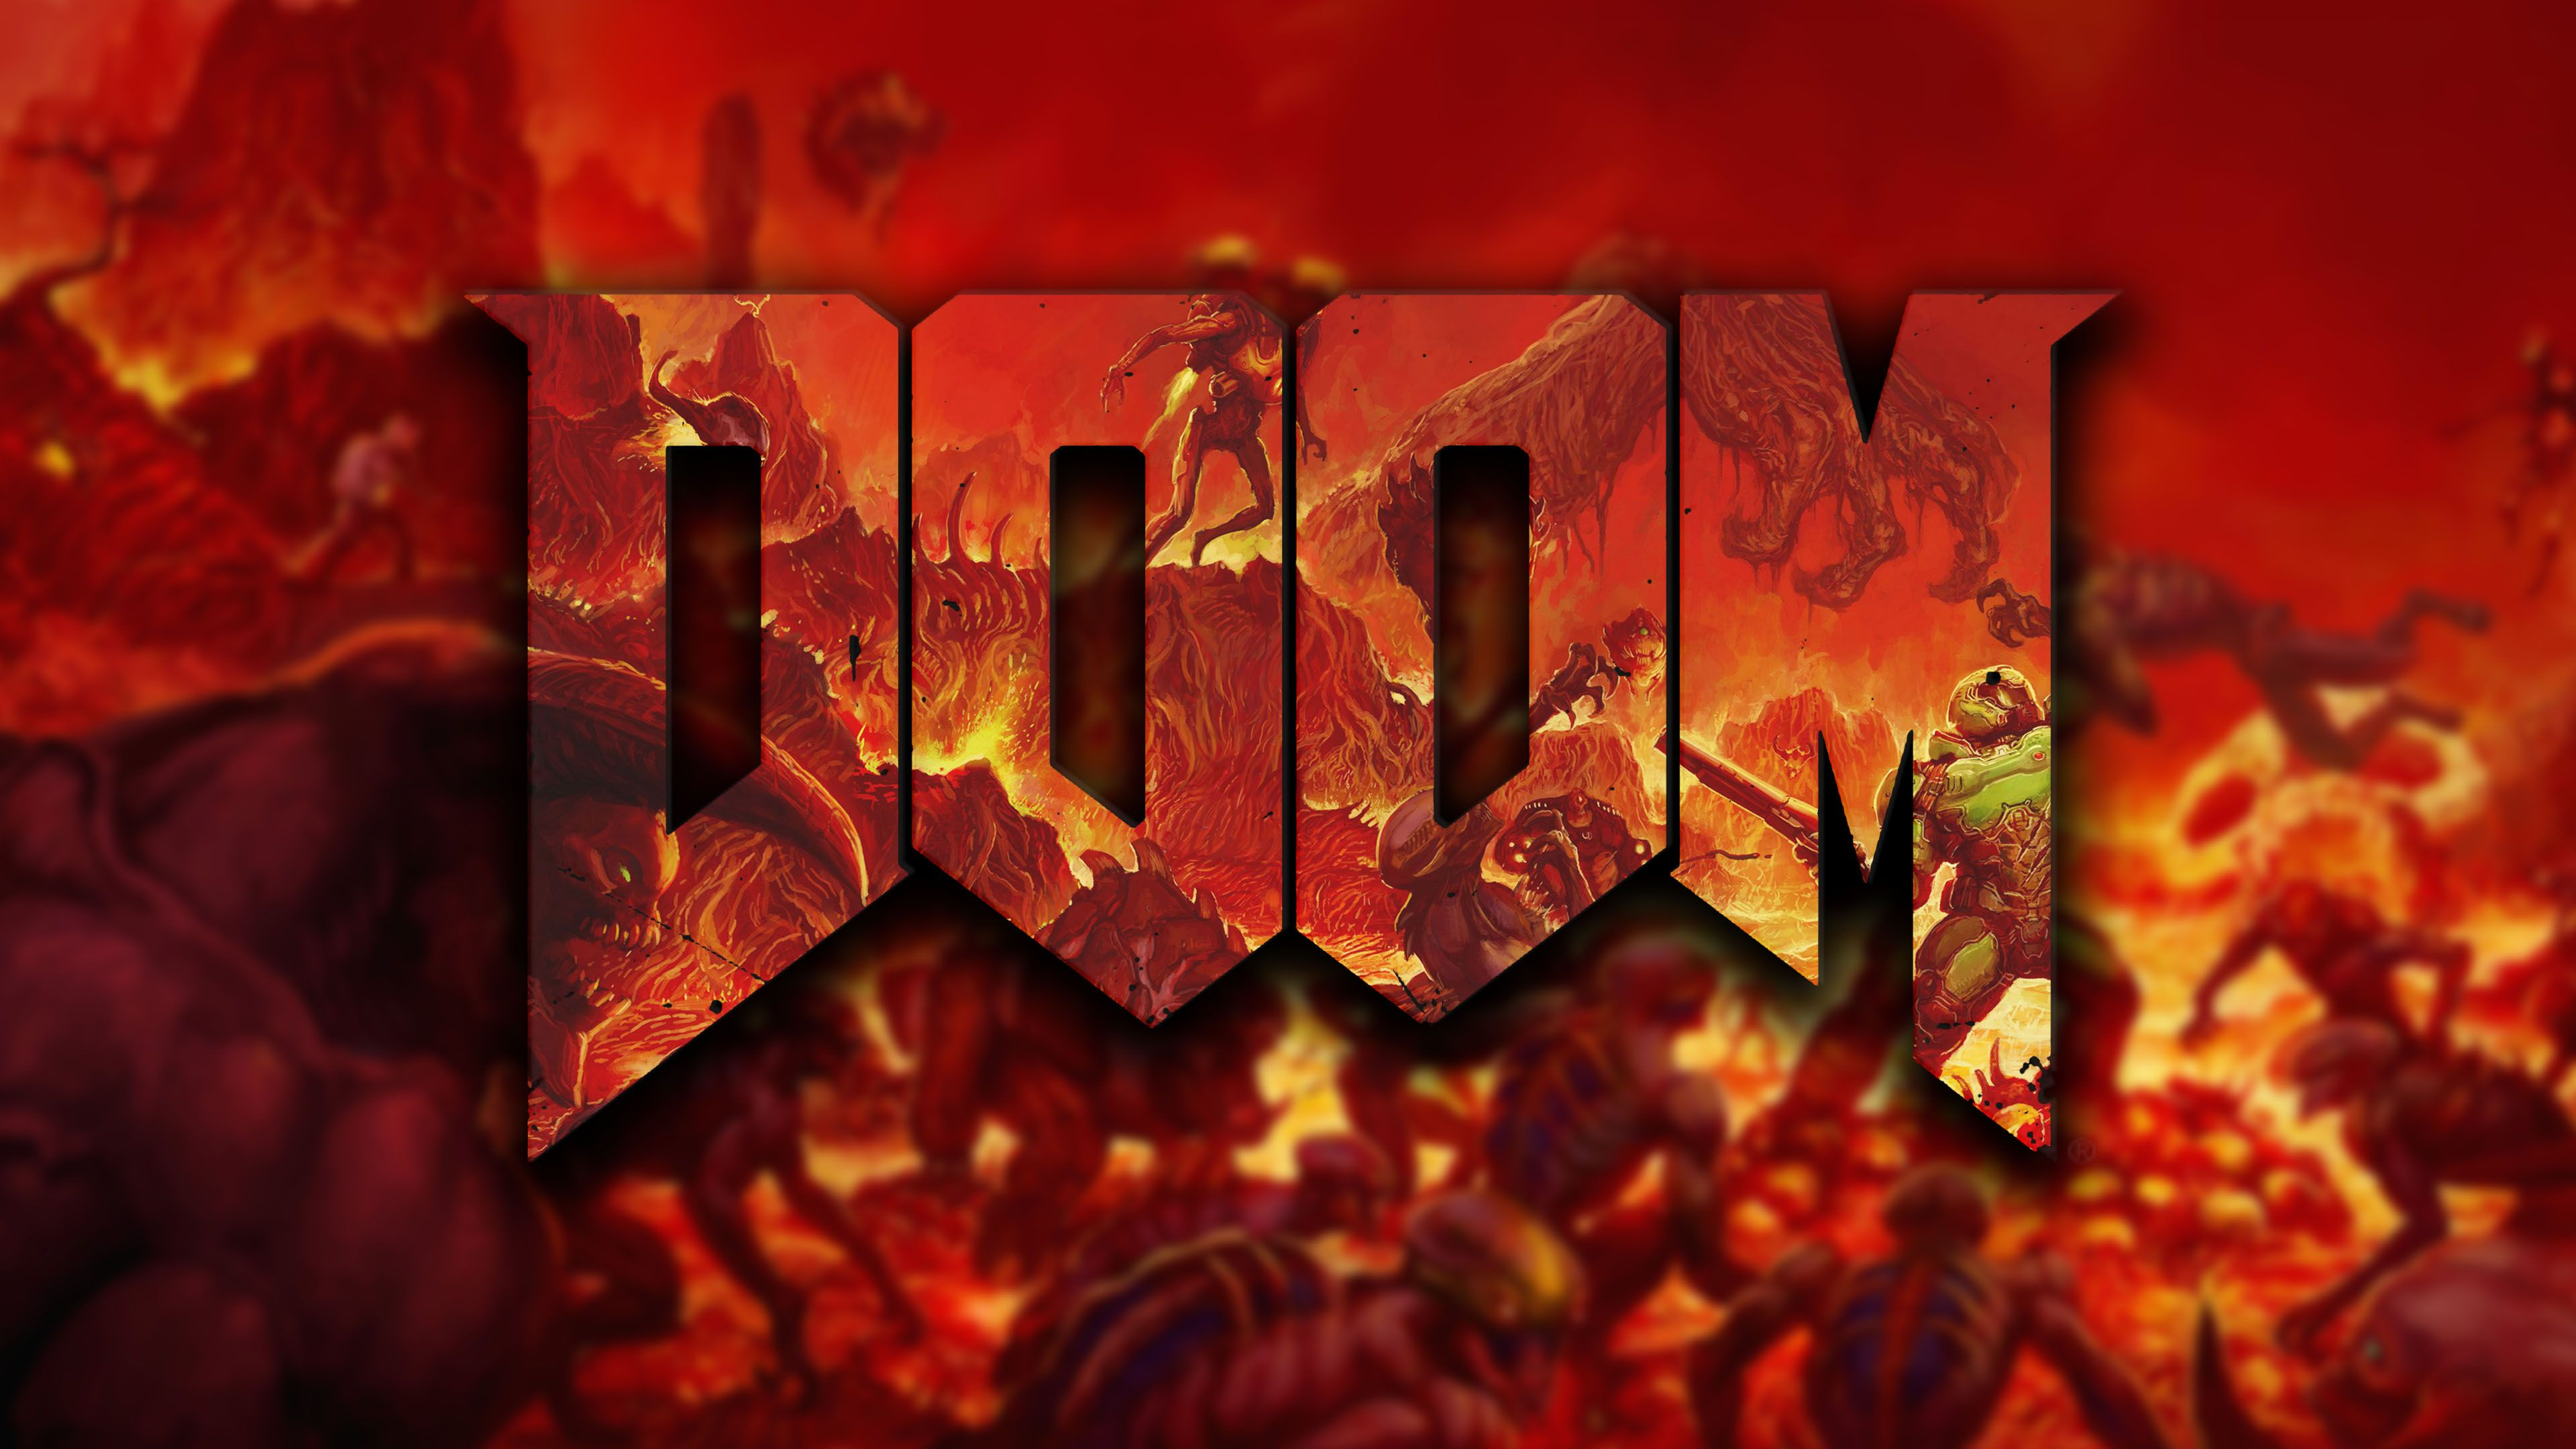 DOOM HD Wallpaper From